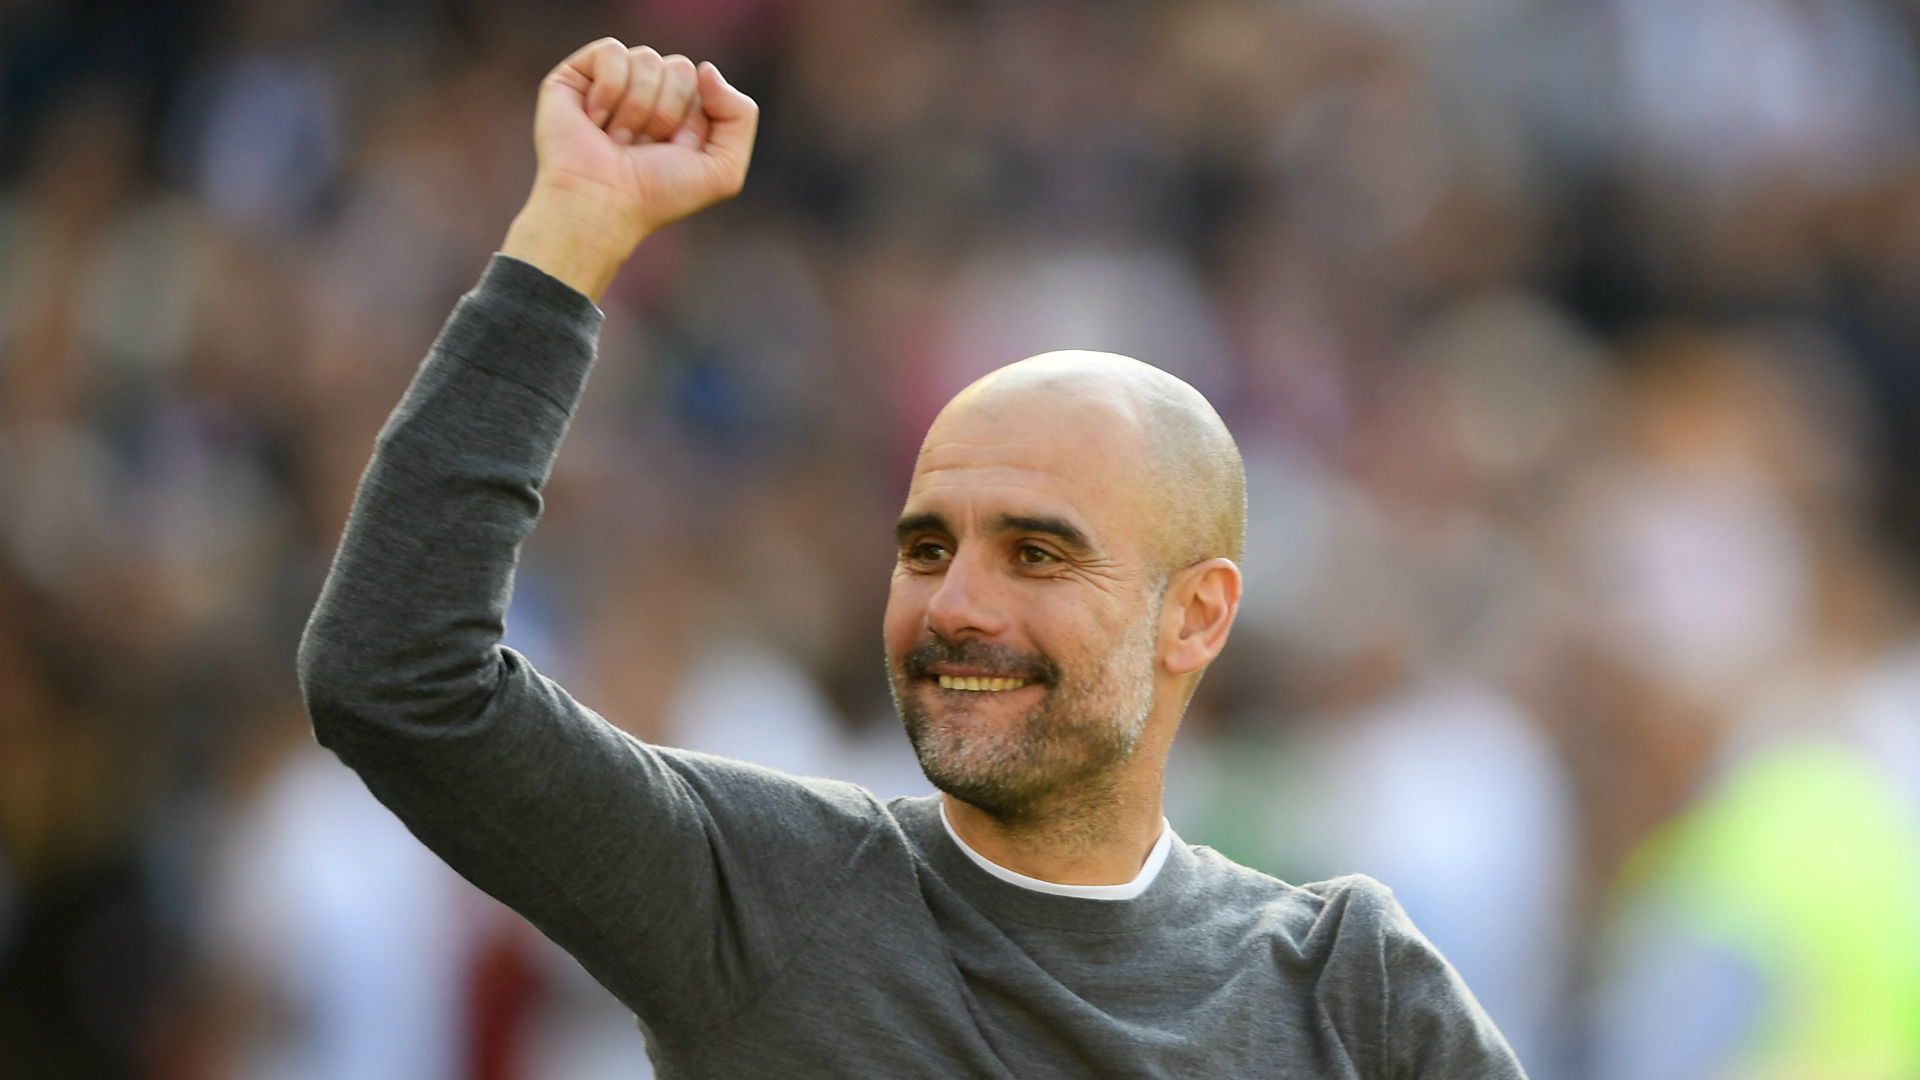 I'm not going anywhere - Guardiola rules out Juventus job